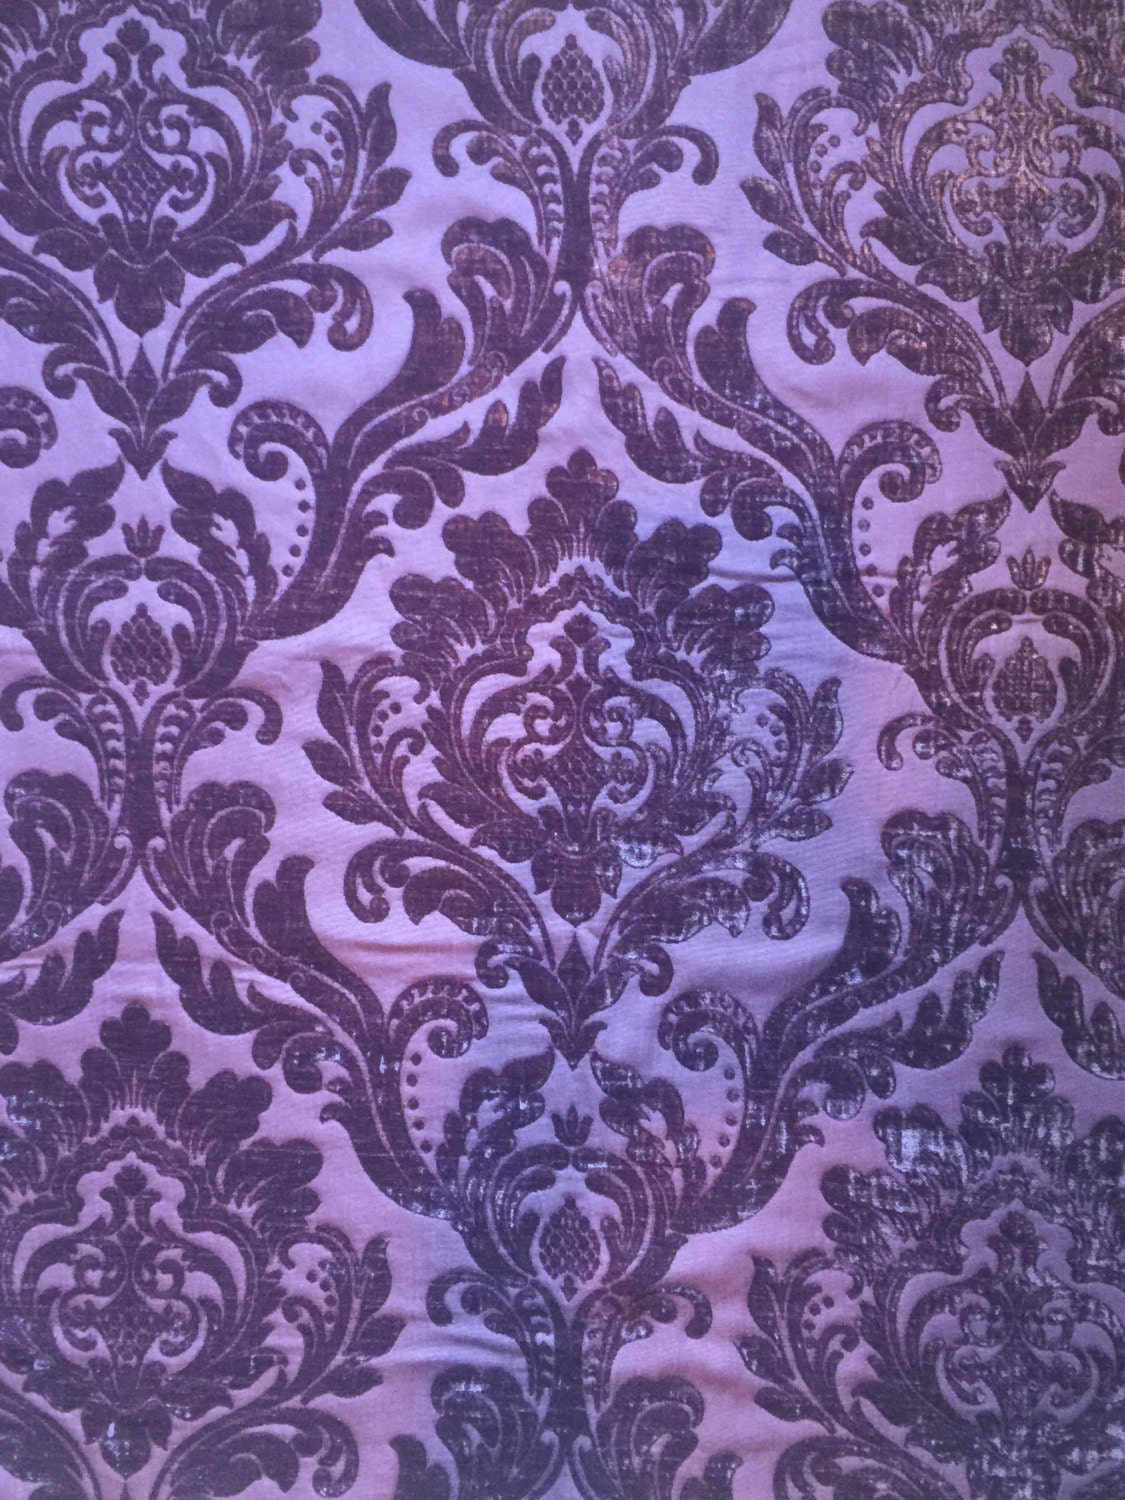 Neiman plum by worldwide fabric remnants upholstery grade for Fabric remnants